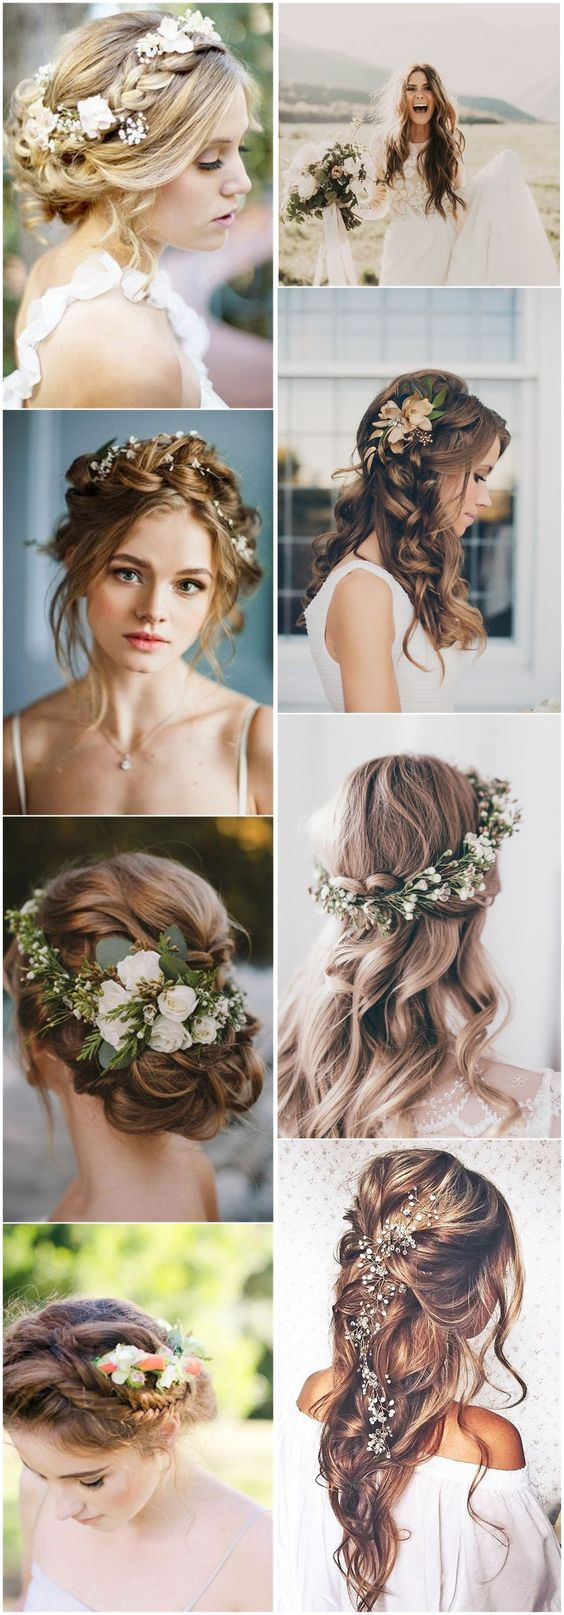 Wedding Hairstyles    » 21 Inspiring Boho Bridal Hairstyles Ideas to Steal